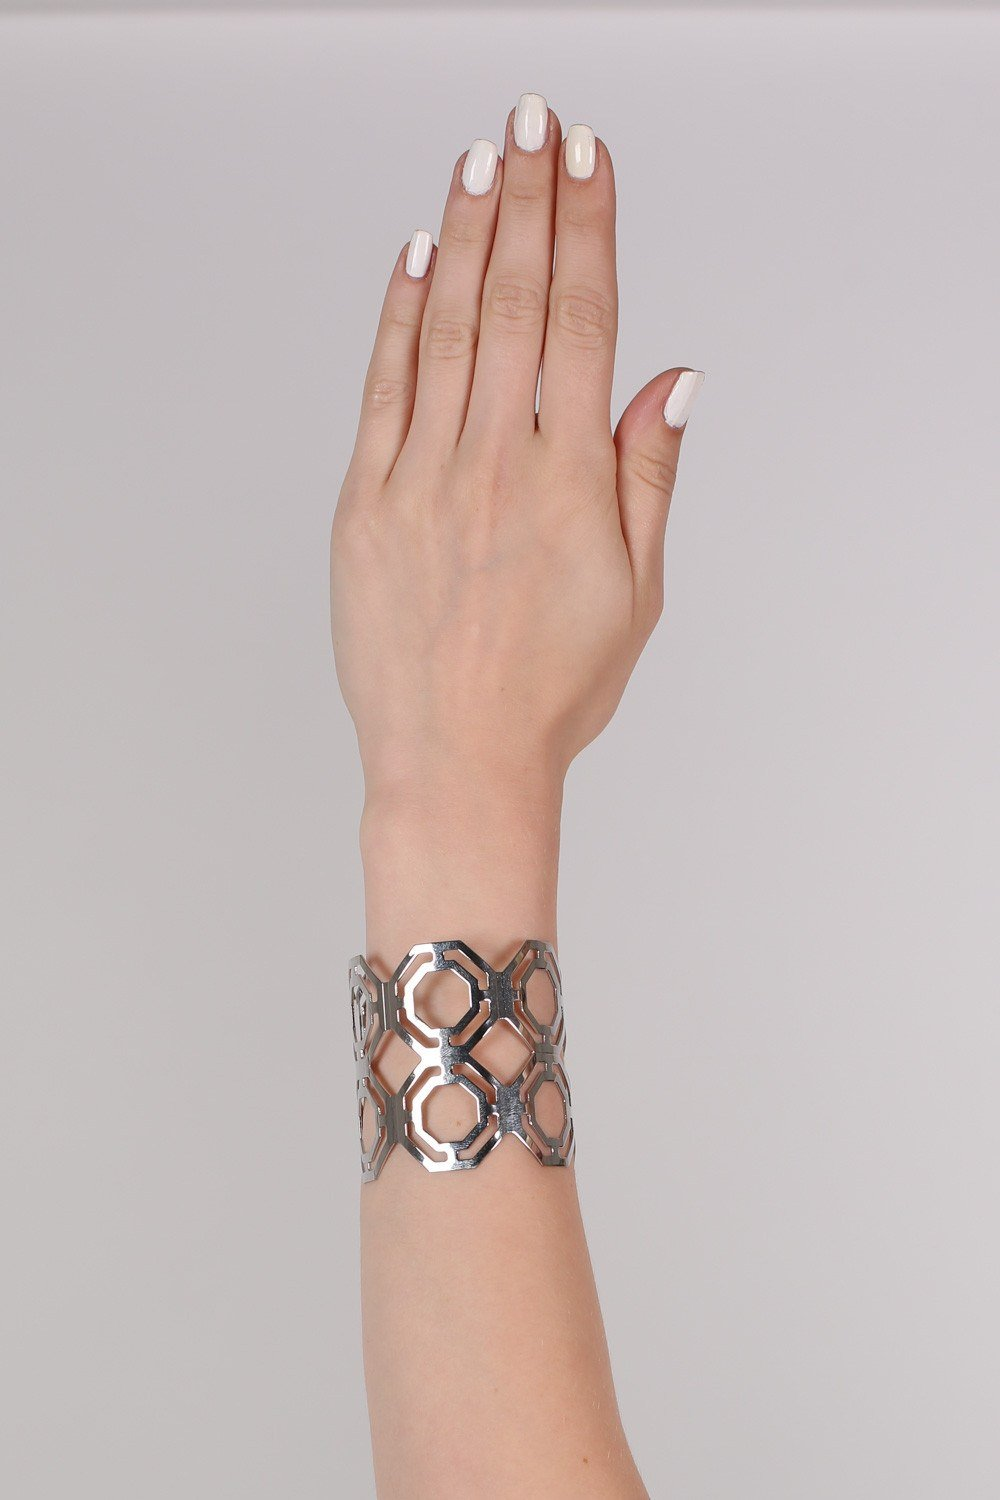 Geometric Cut Out Cuff Bracelet in Silver 0